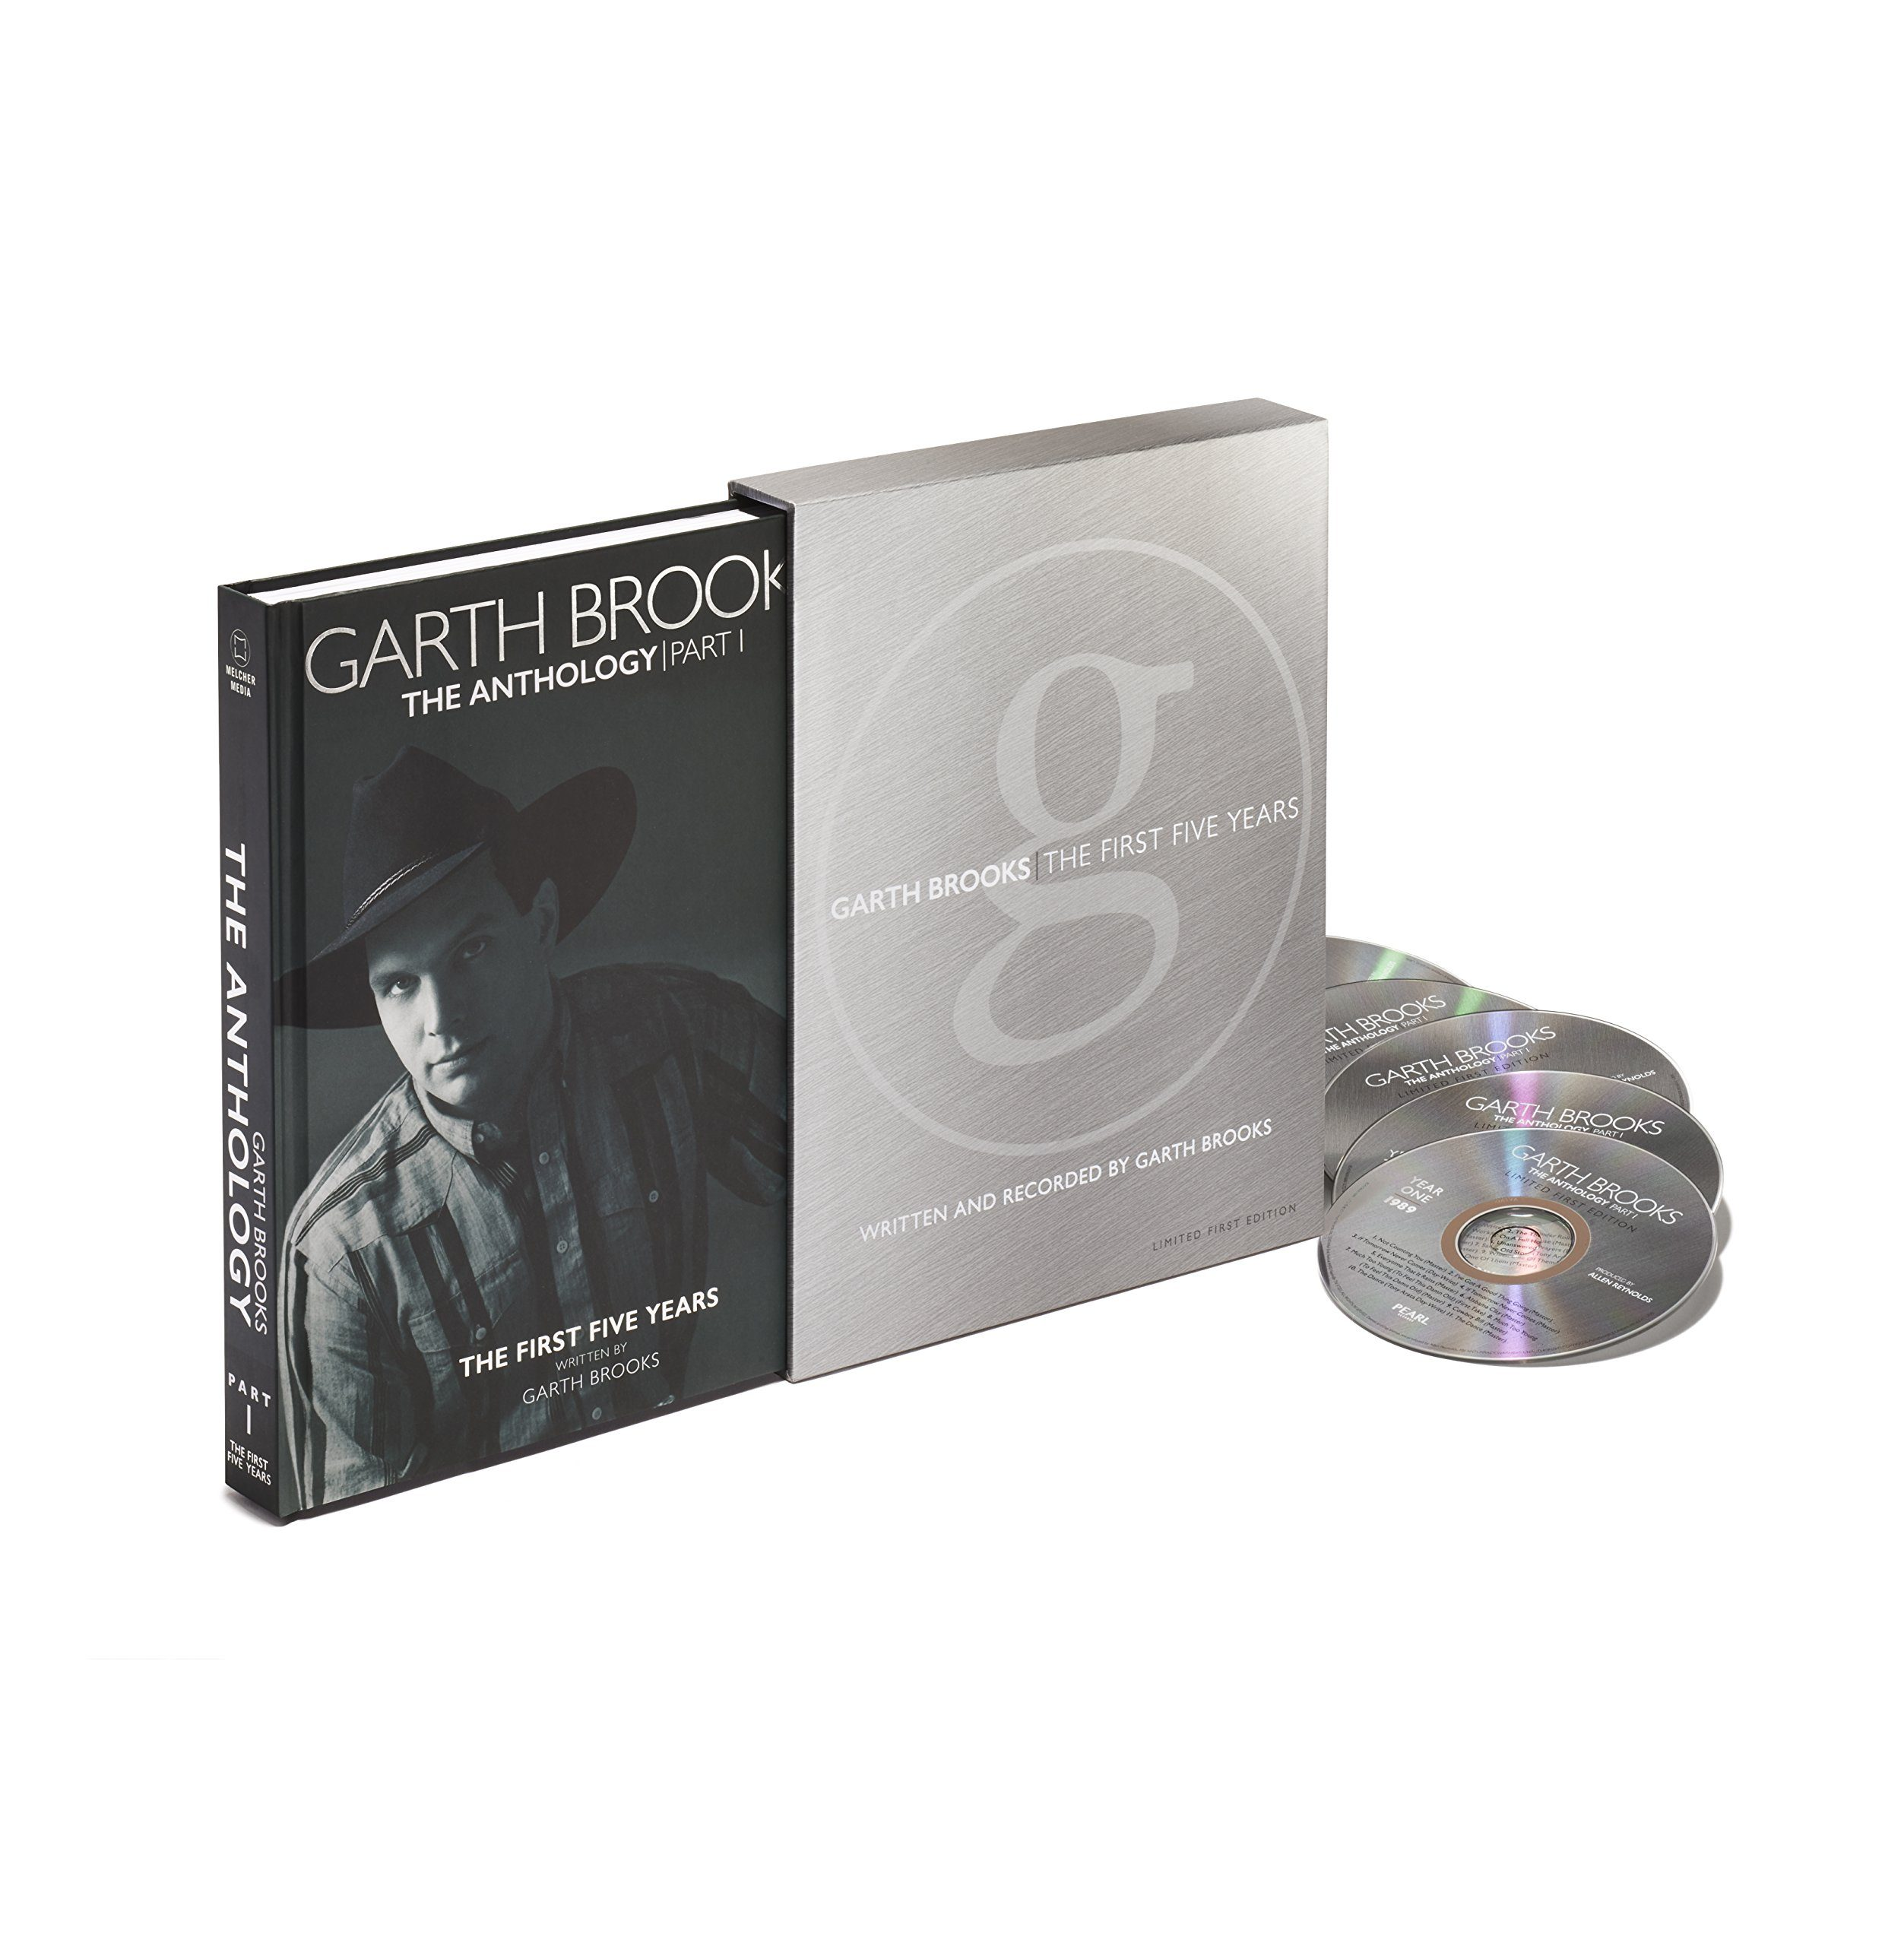 Garth Brooks Tops Album Sales with Anthology